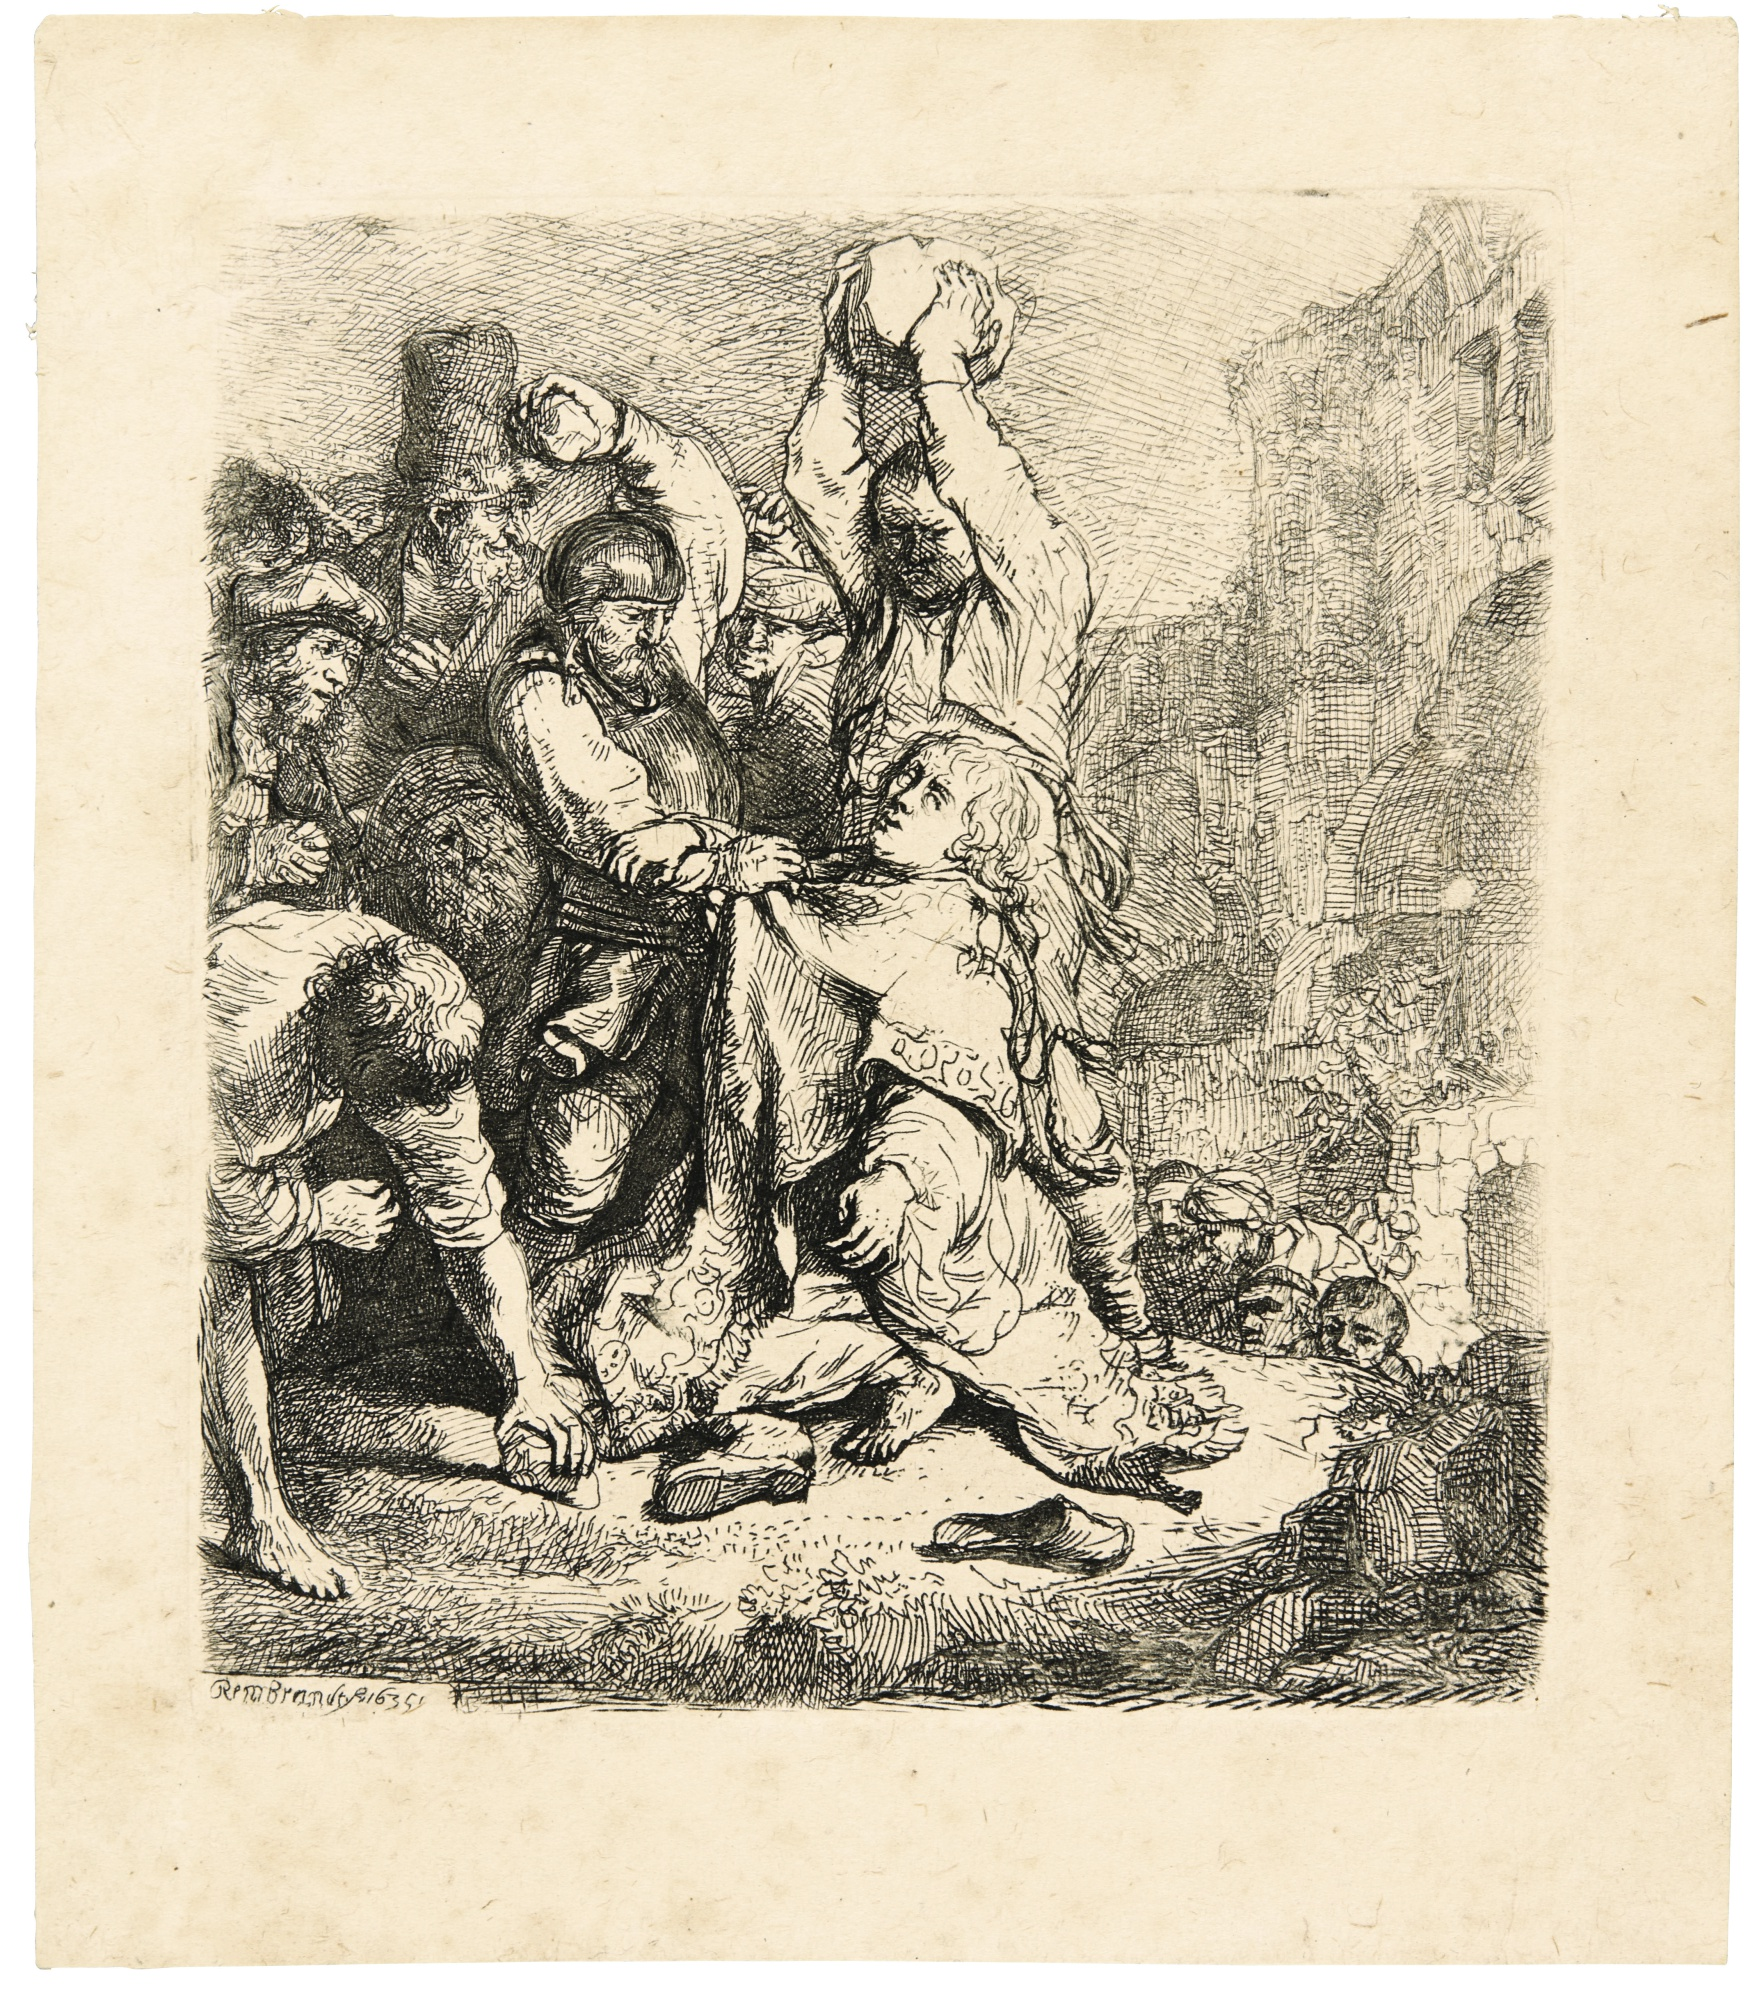 Rembrandt van Rijn-The Stoning Of Saint Stephen (B., Holl. 97; New Holl. 140; H. 125)-1635